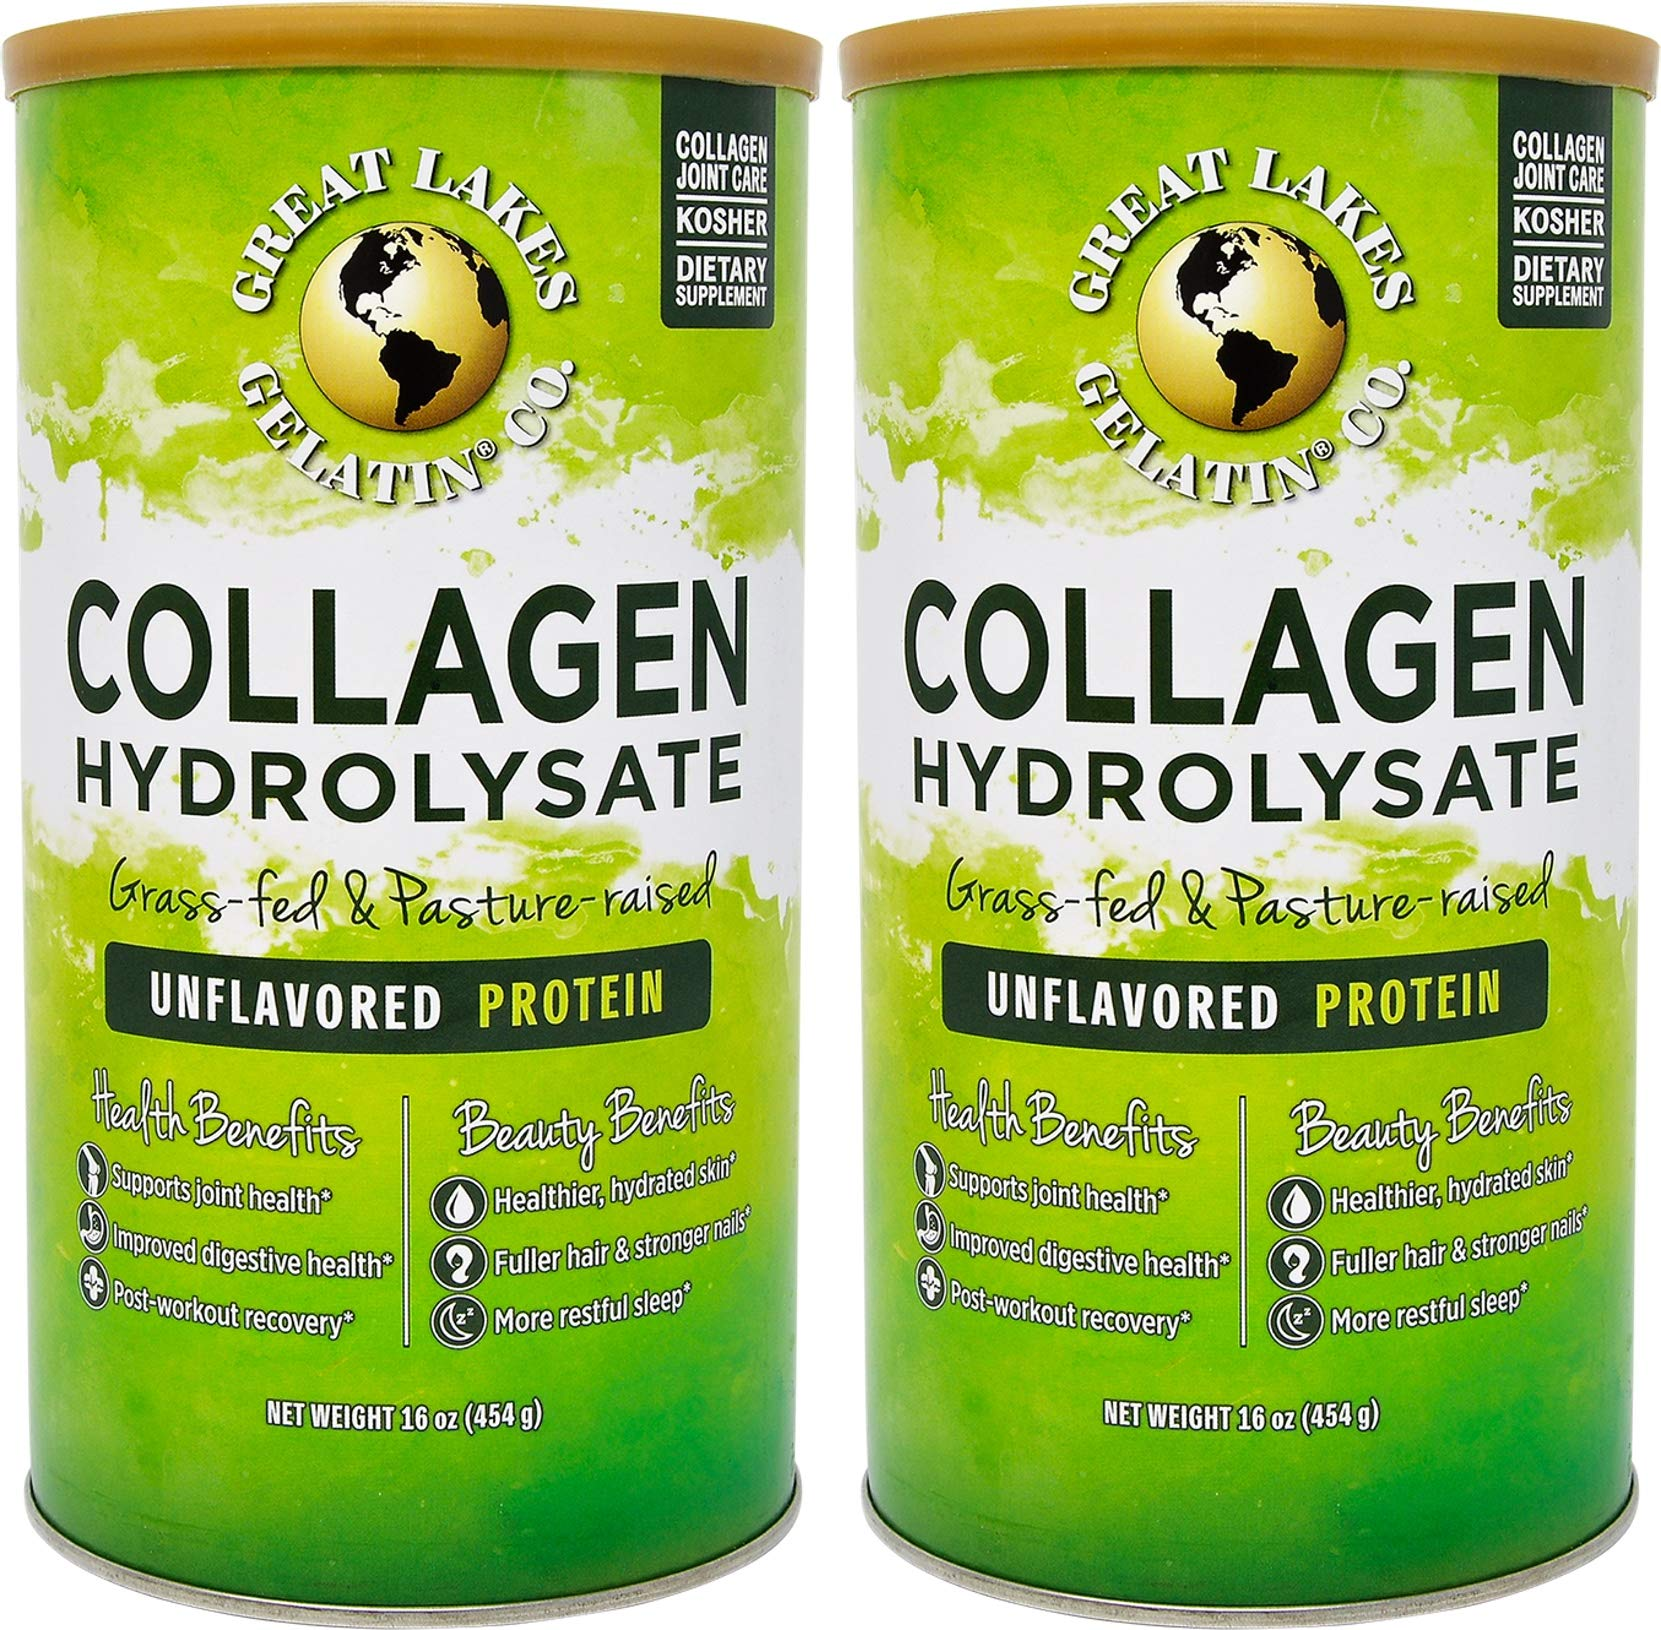 Great Lakes Gelatin, Collagen Hydrolysate, Unflavored Beef Protein, Kosher, 16 oz Cans (Pack of 2) by Great Lakes